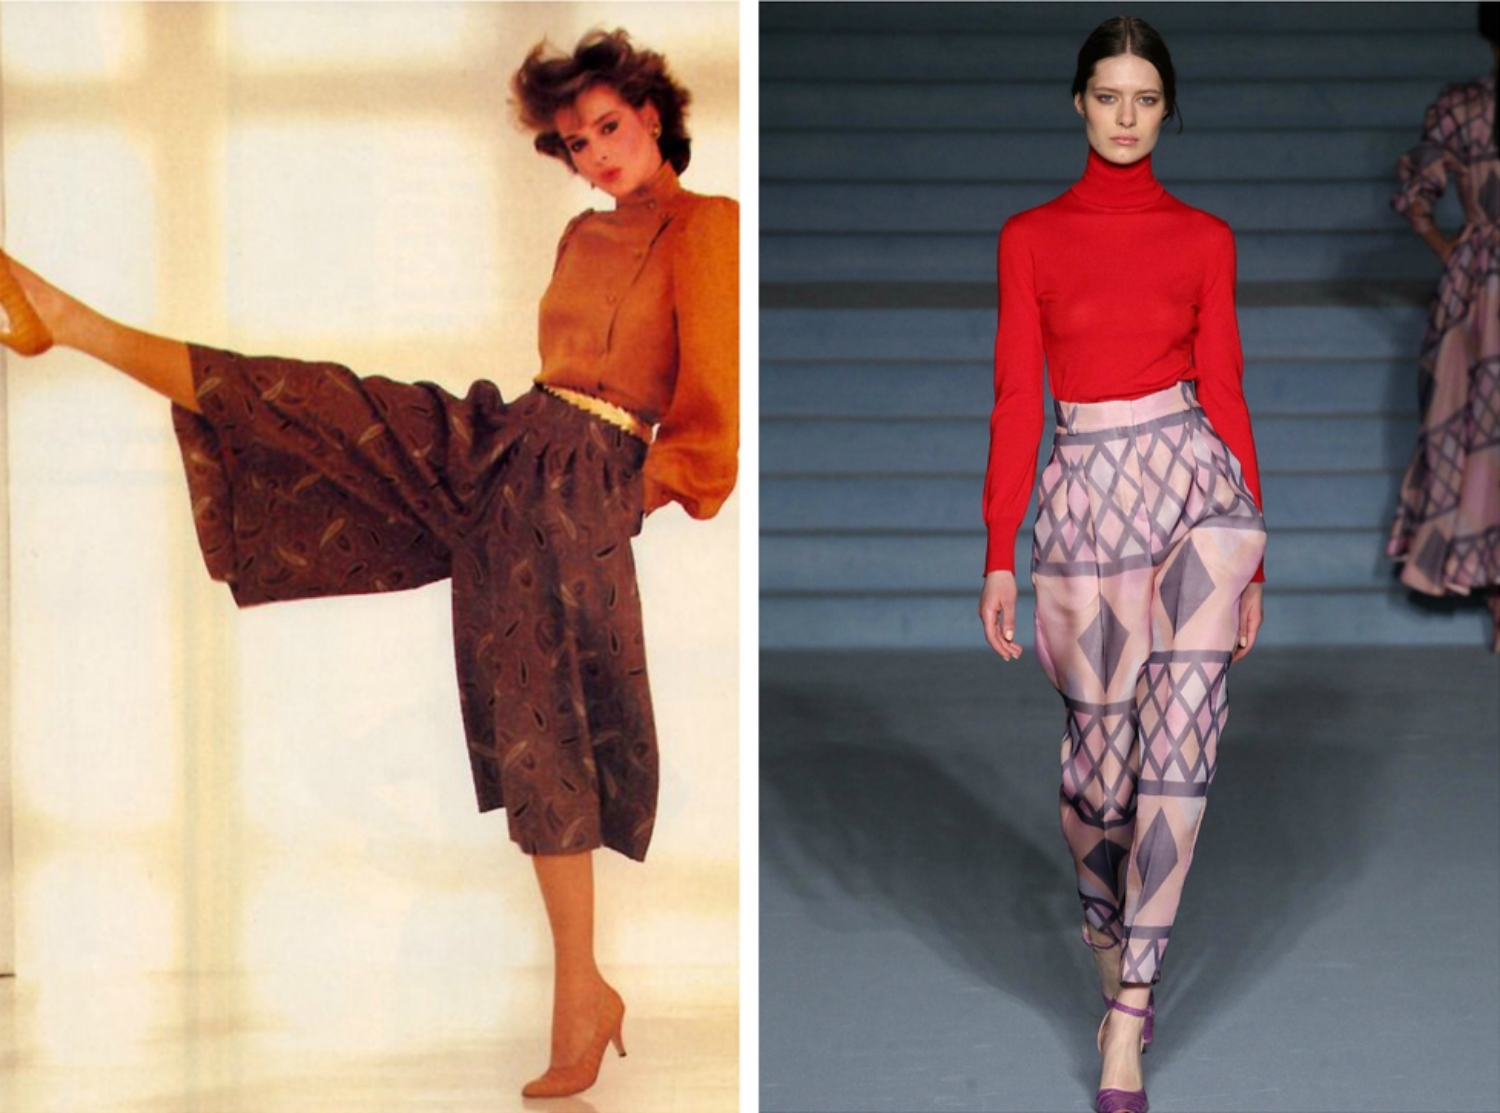 From left to right: Harem Pants byStephen Anderson for the 1982 edition of Vogue Patterns Magazine, and Emilia Wickstead's  collection for London Fashion Week, Fall 2015.